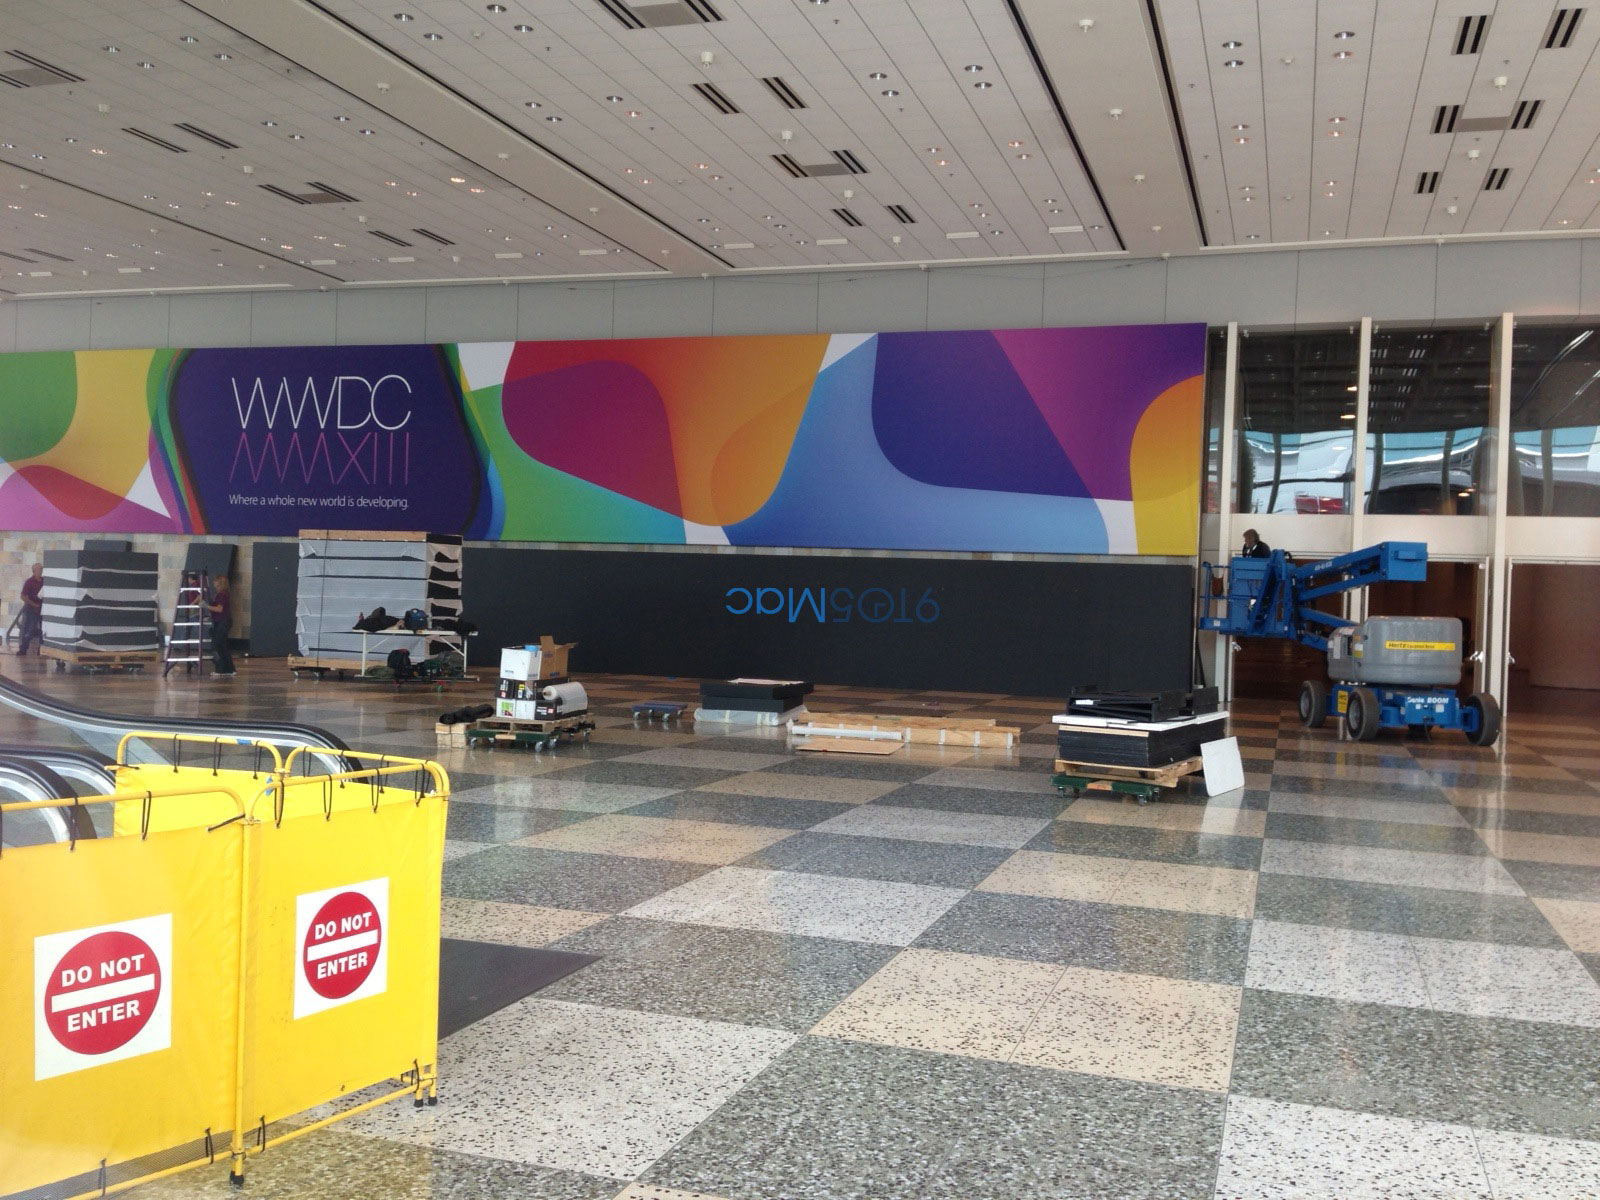 apple-starts-decorating-moscone-west-with-wwdc-2013-banners-4